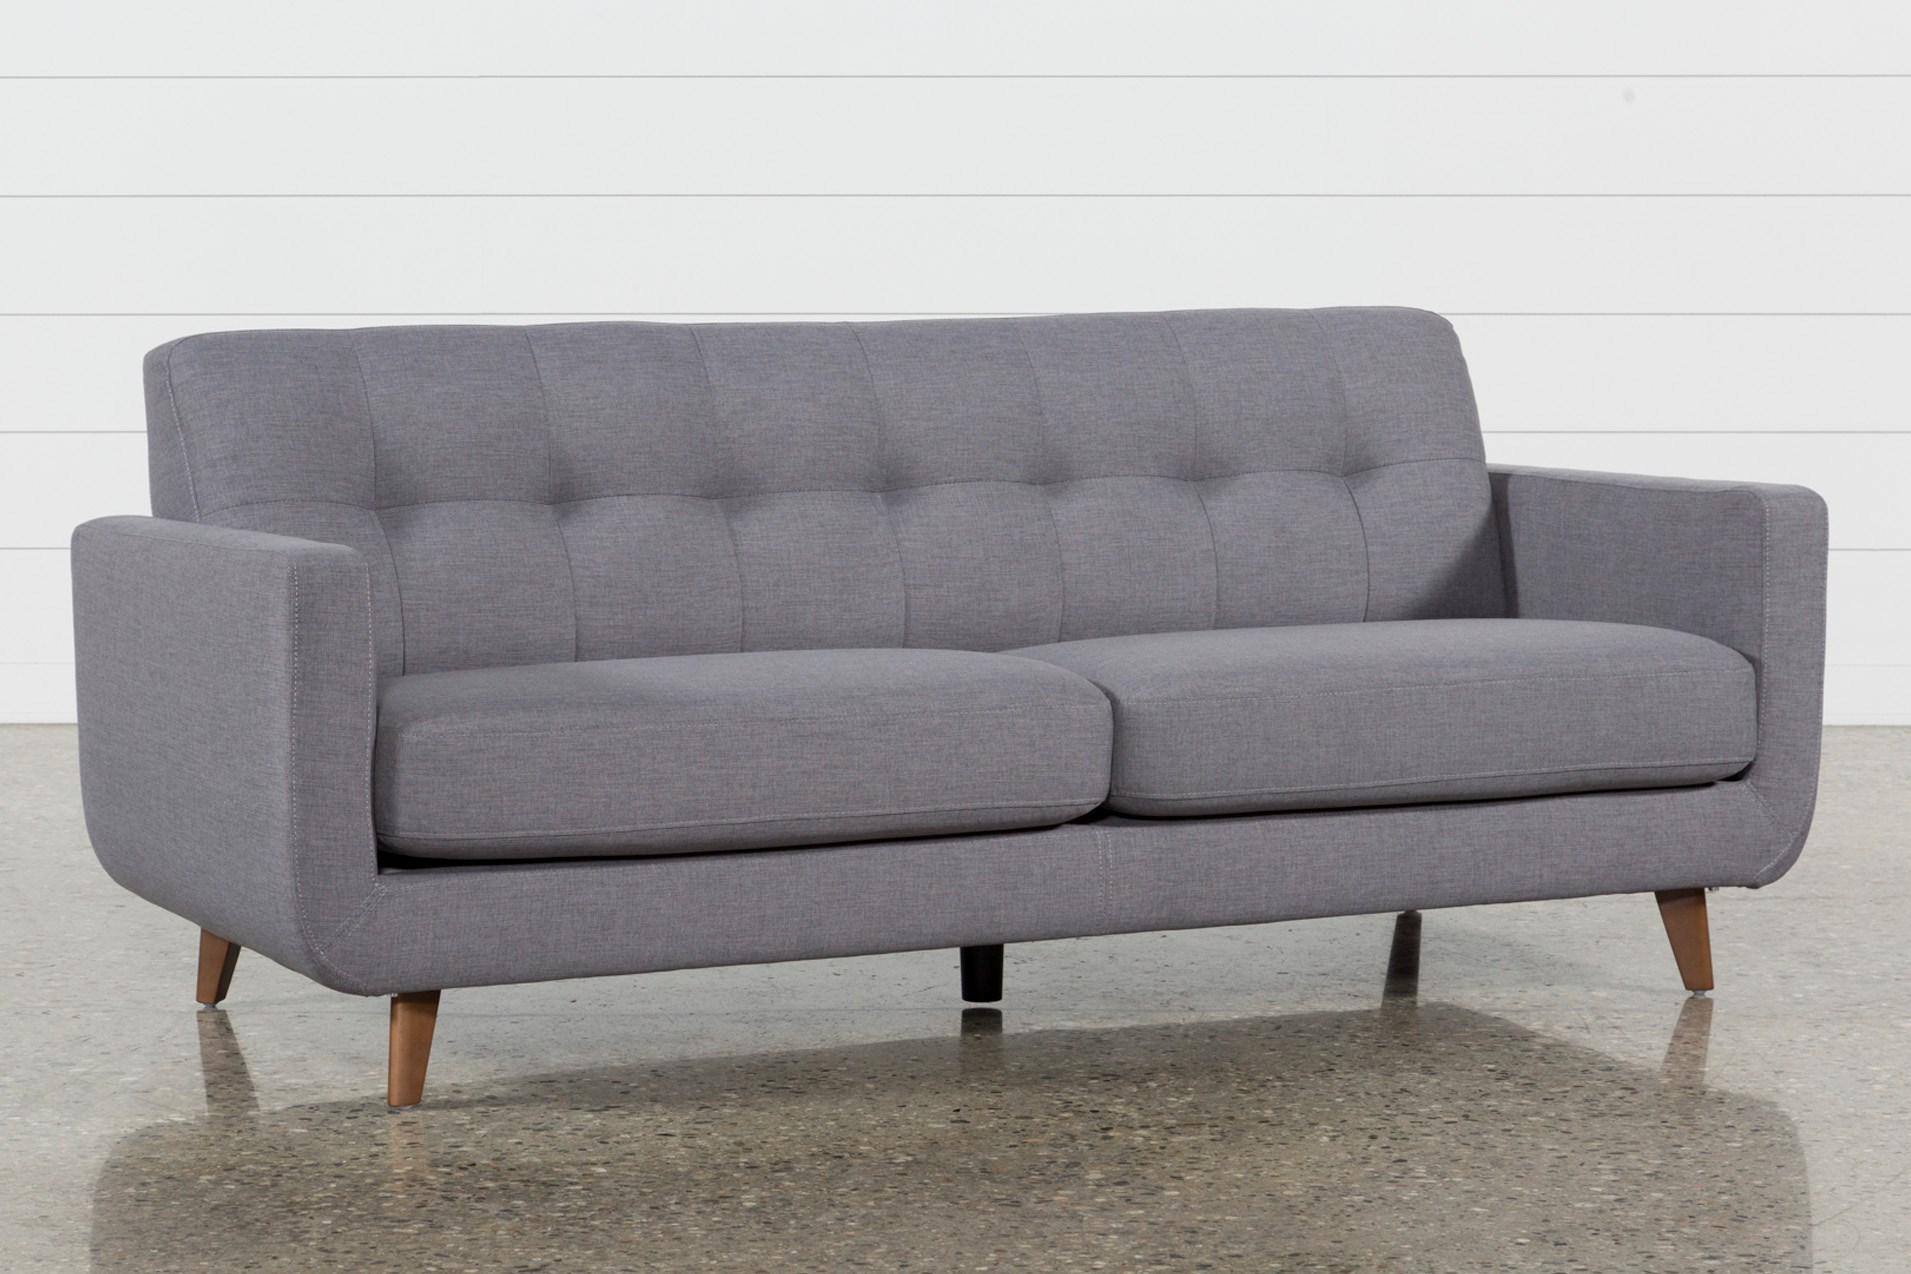 Remarkable Allie Dark Grey Sofa Creativecarmelina Interior Chair Design Creativecarmelinacom